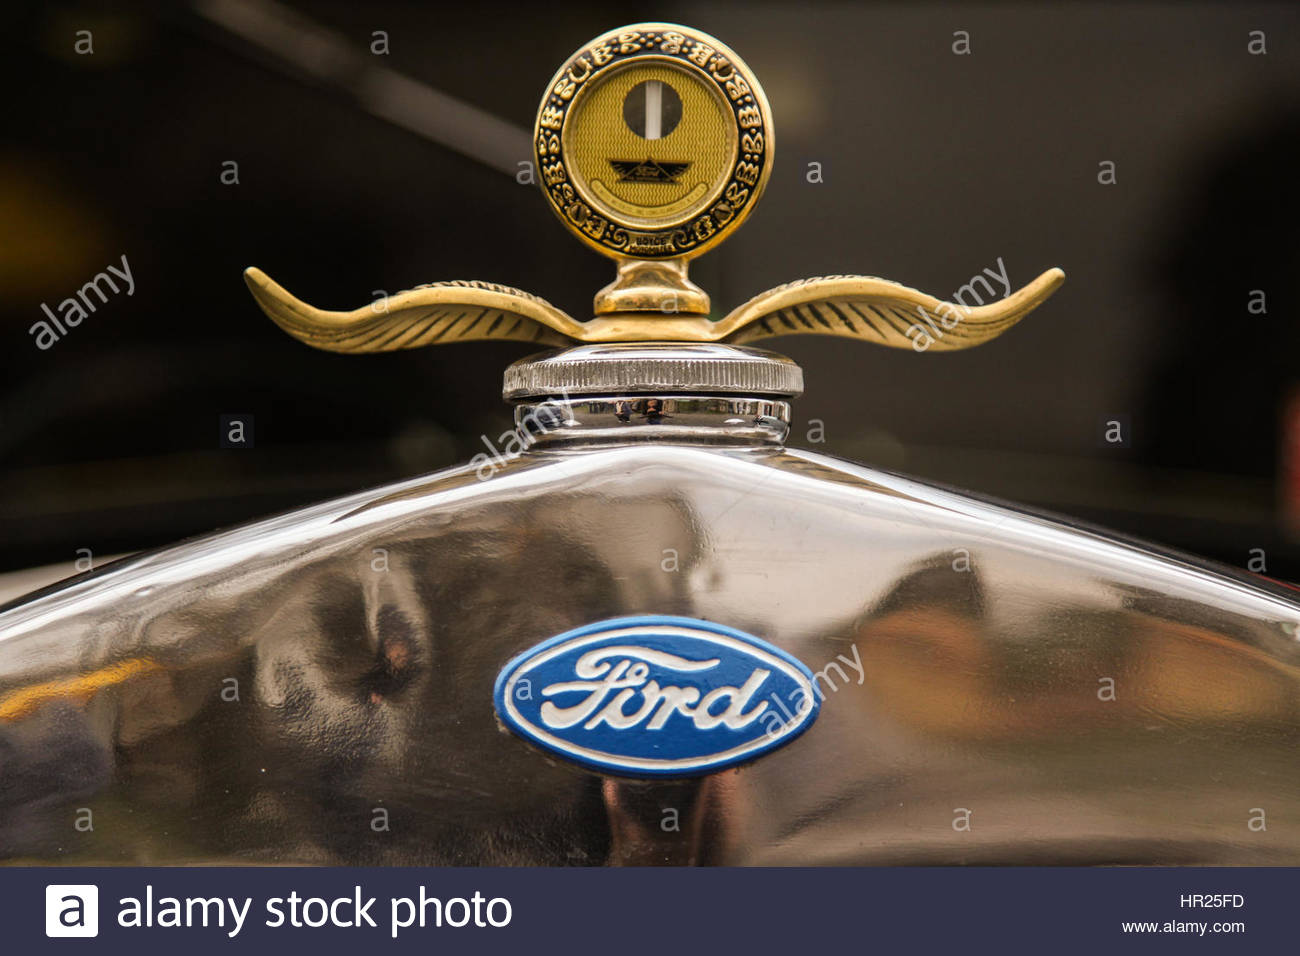 Old Ford detail - Stock Image